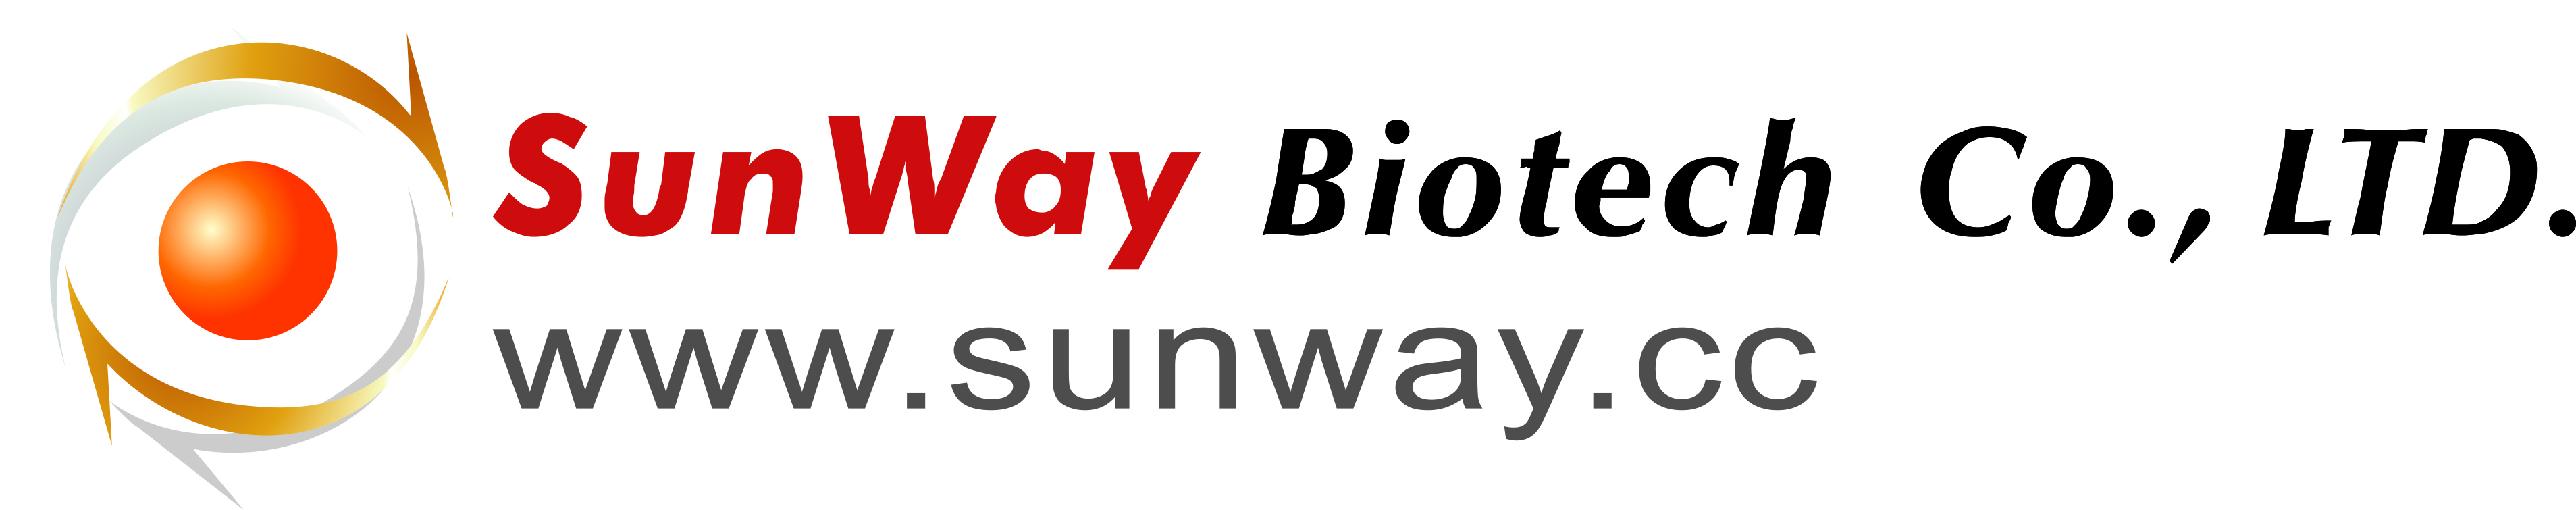 SunWay Biotech Co Ltd